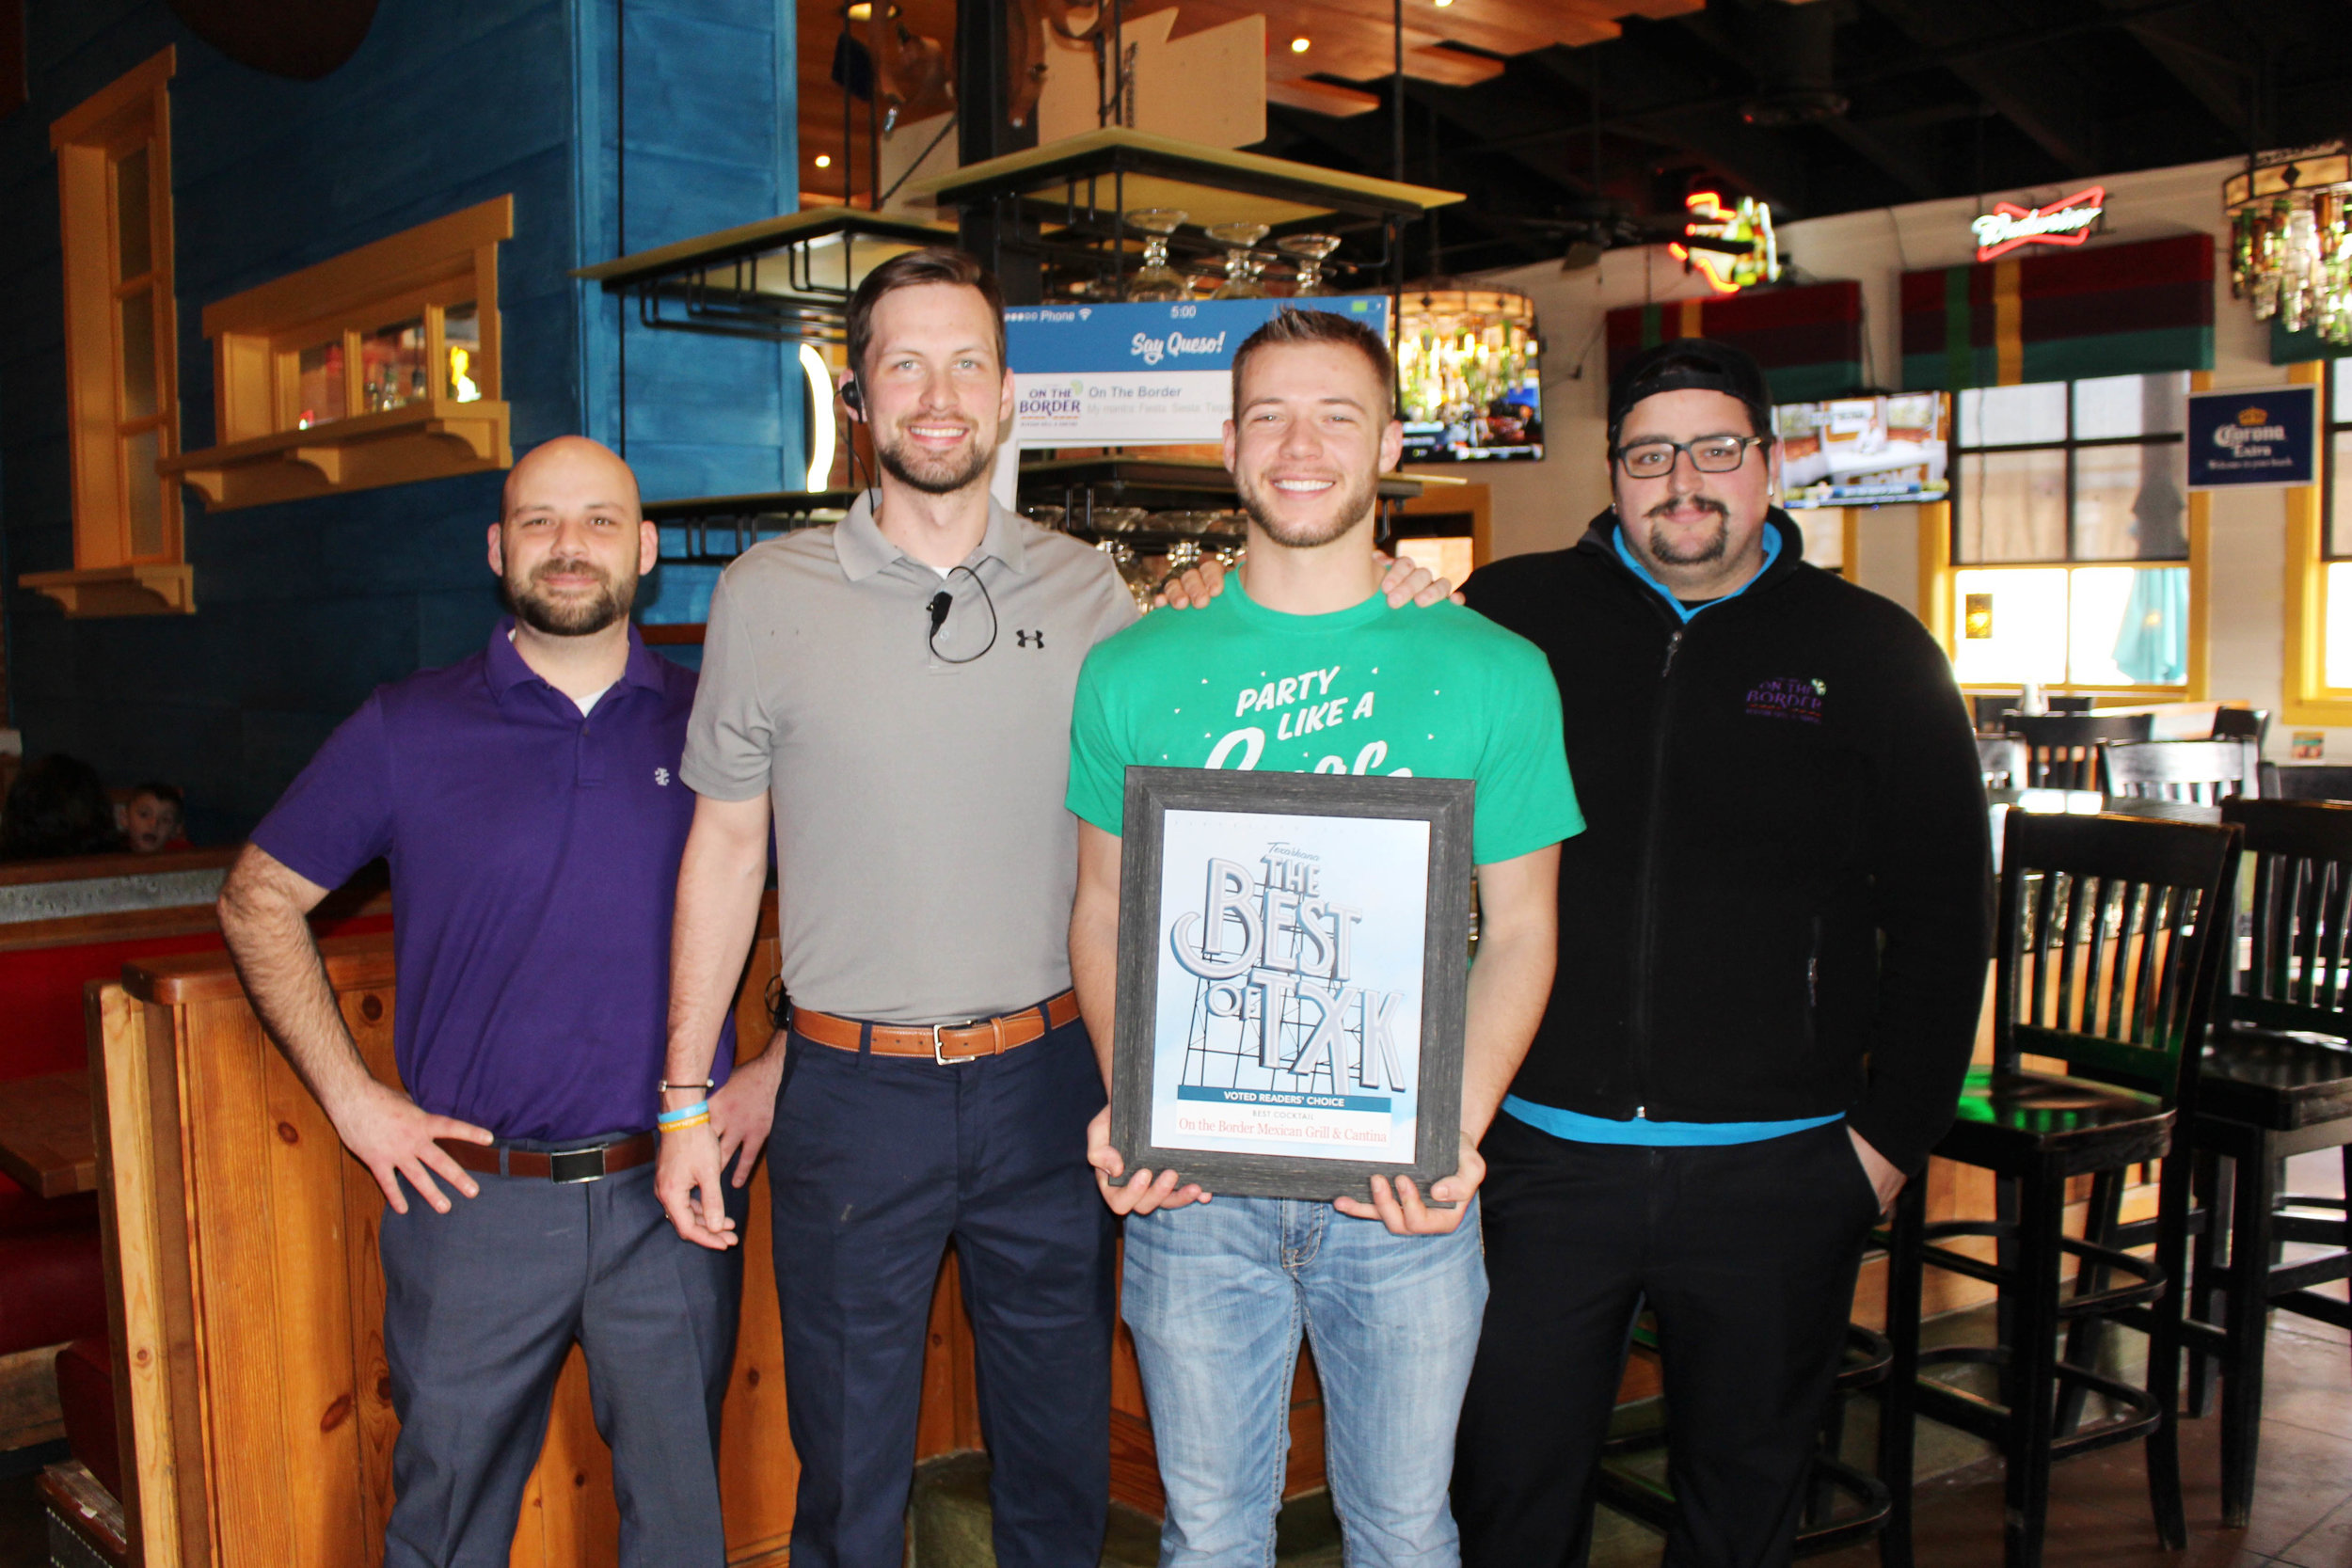 ON THE BORDER MEXICAN GRILL & CANTINA – Luke Lavay, Ryan Peacock, Ryan Williams and Cody Shippey